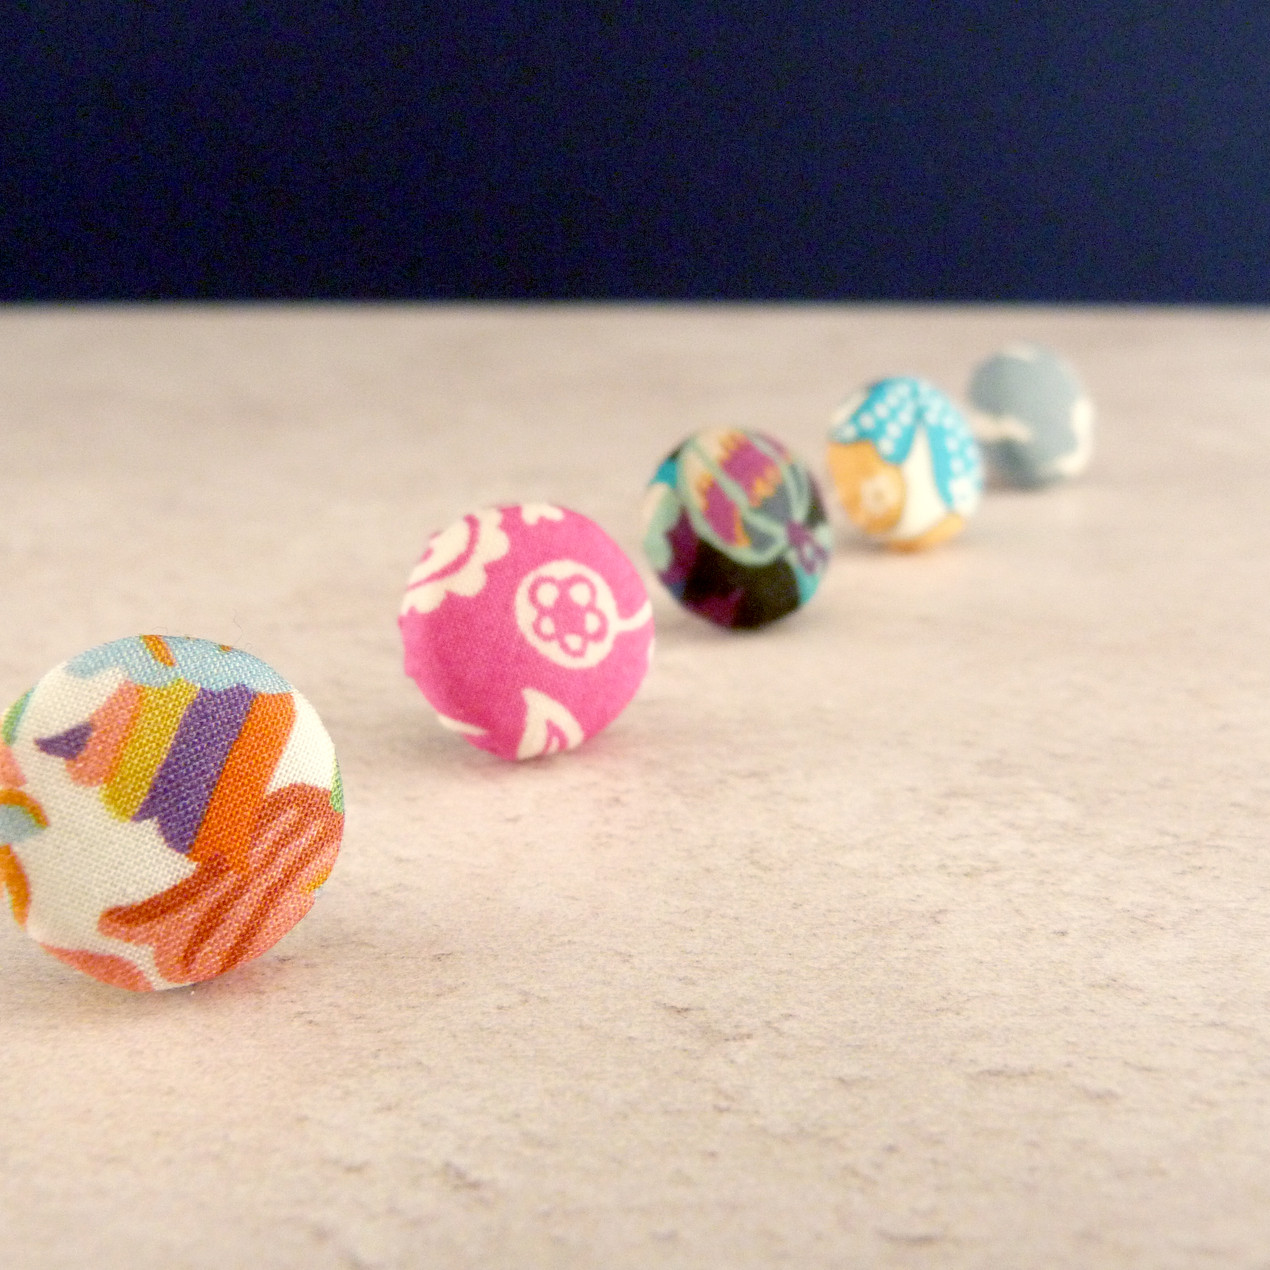 Colourful Stud Earrings are a great favour for your bridal party and bring a splash of colour to your Zoom celebration